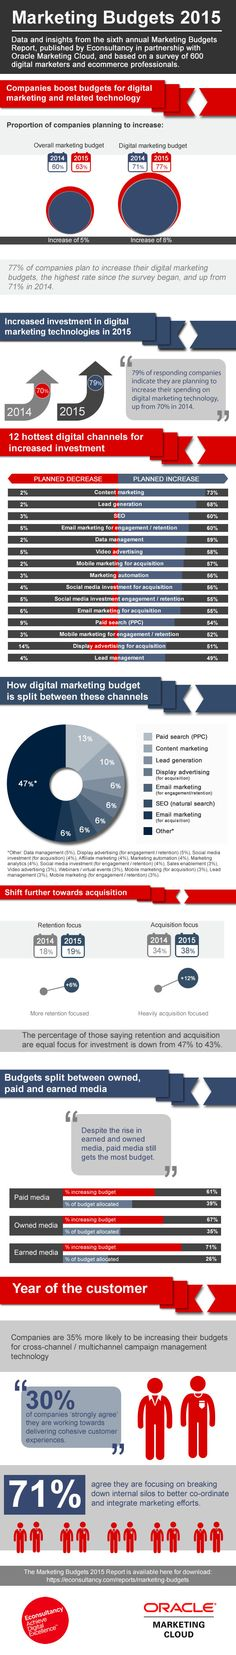 Marketing Budgets 2015: digital investment continues to grow [infographic] | Econsultancy